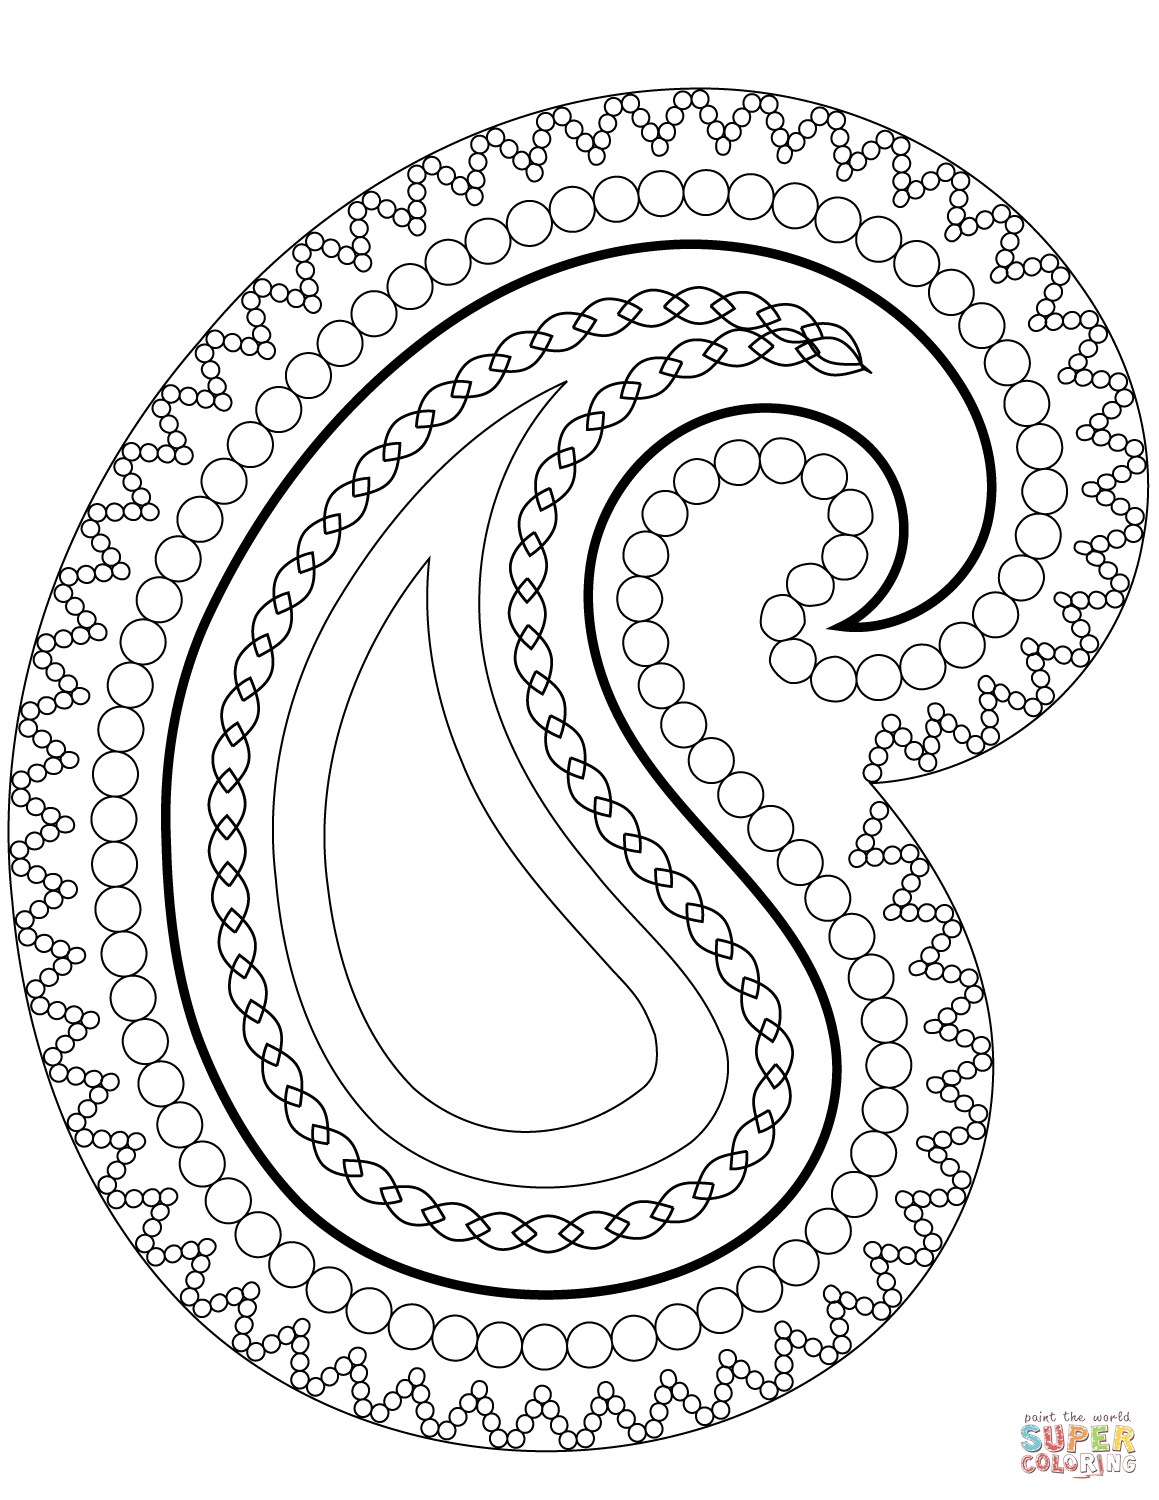 free printable paisley coloring pages free printable paisley coloring pages for adults paisley printable pages coloring free